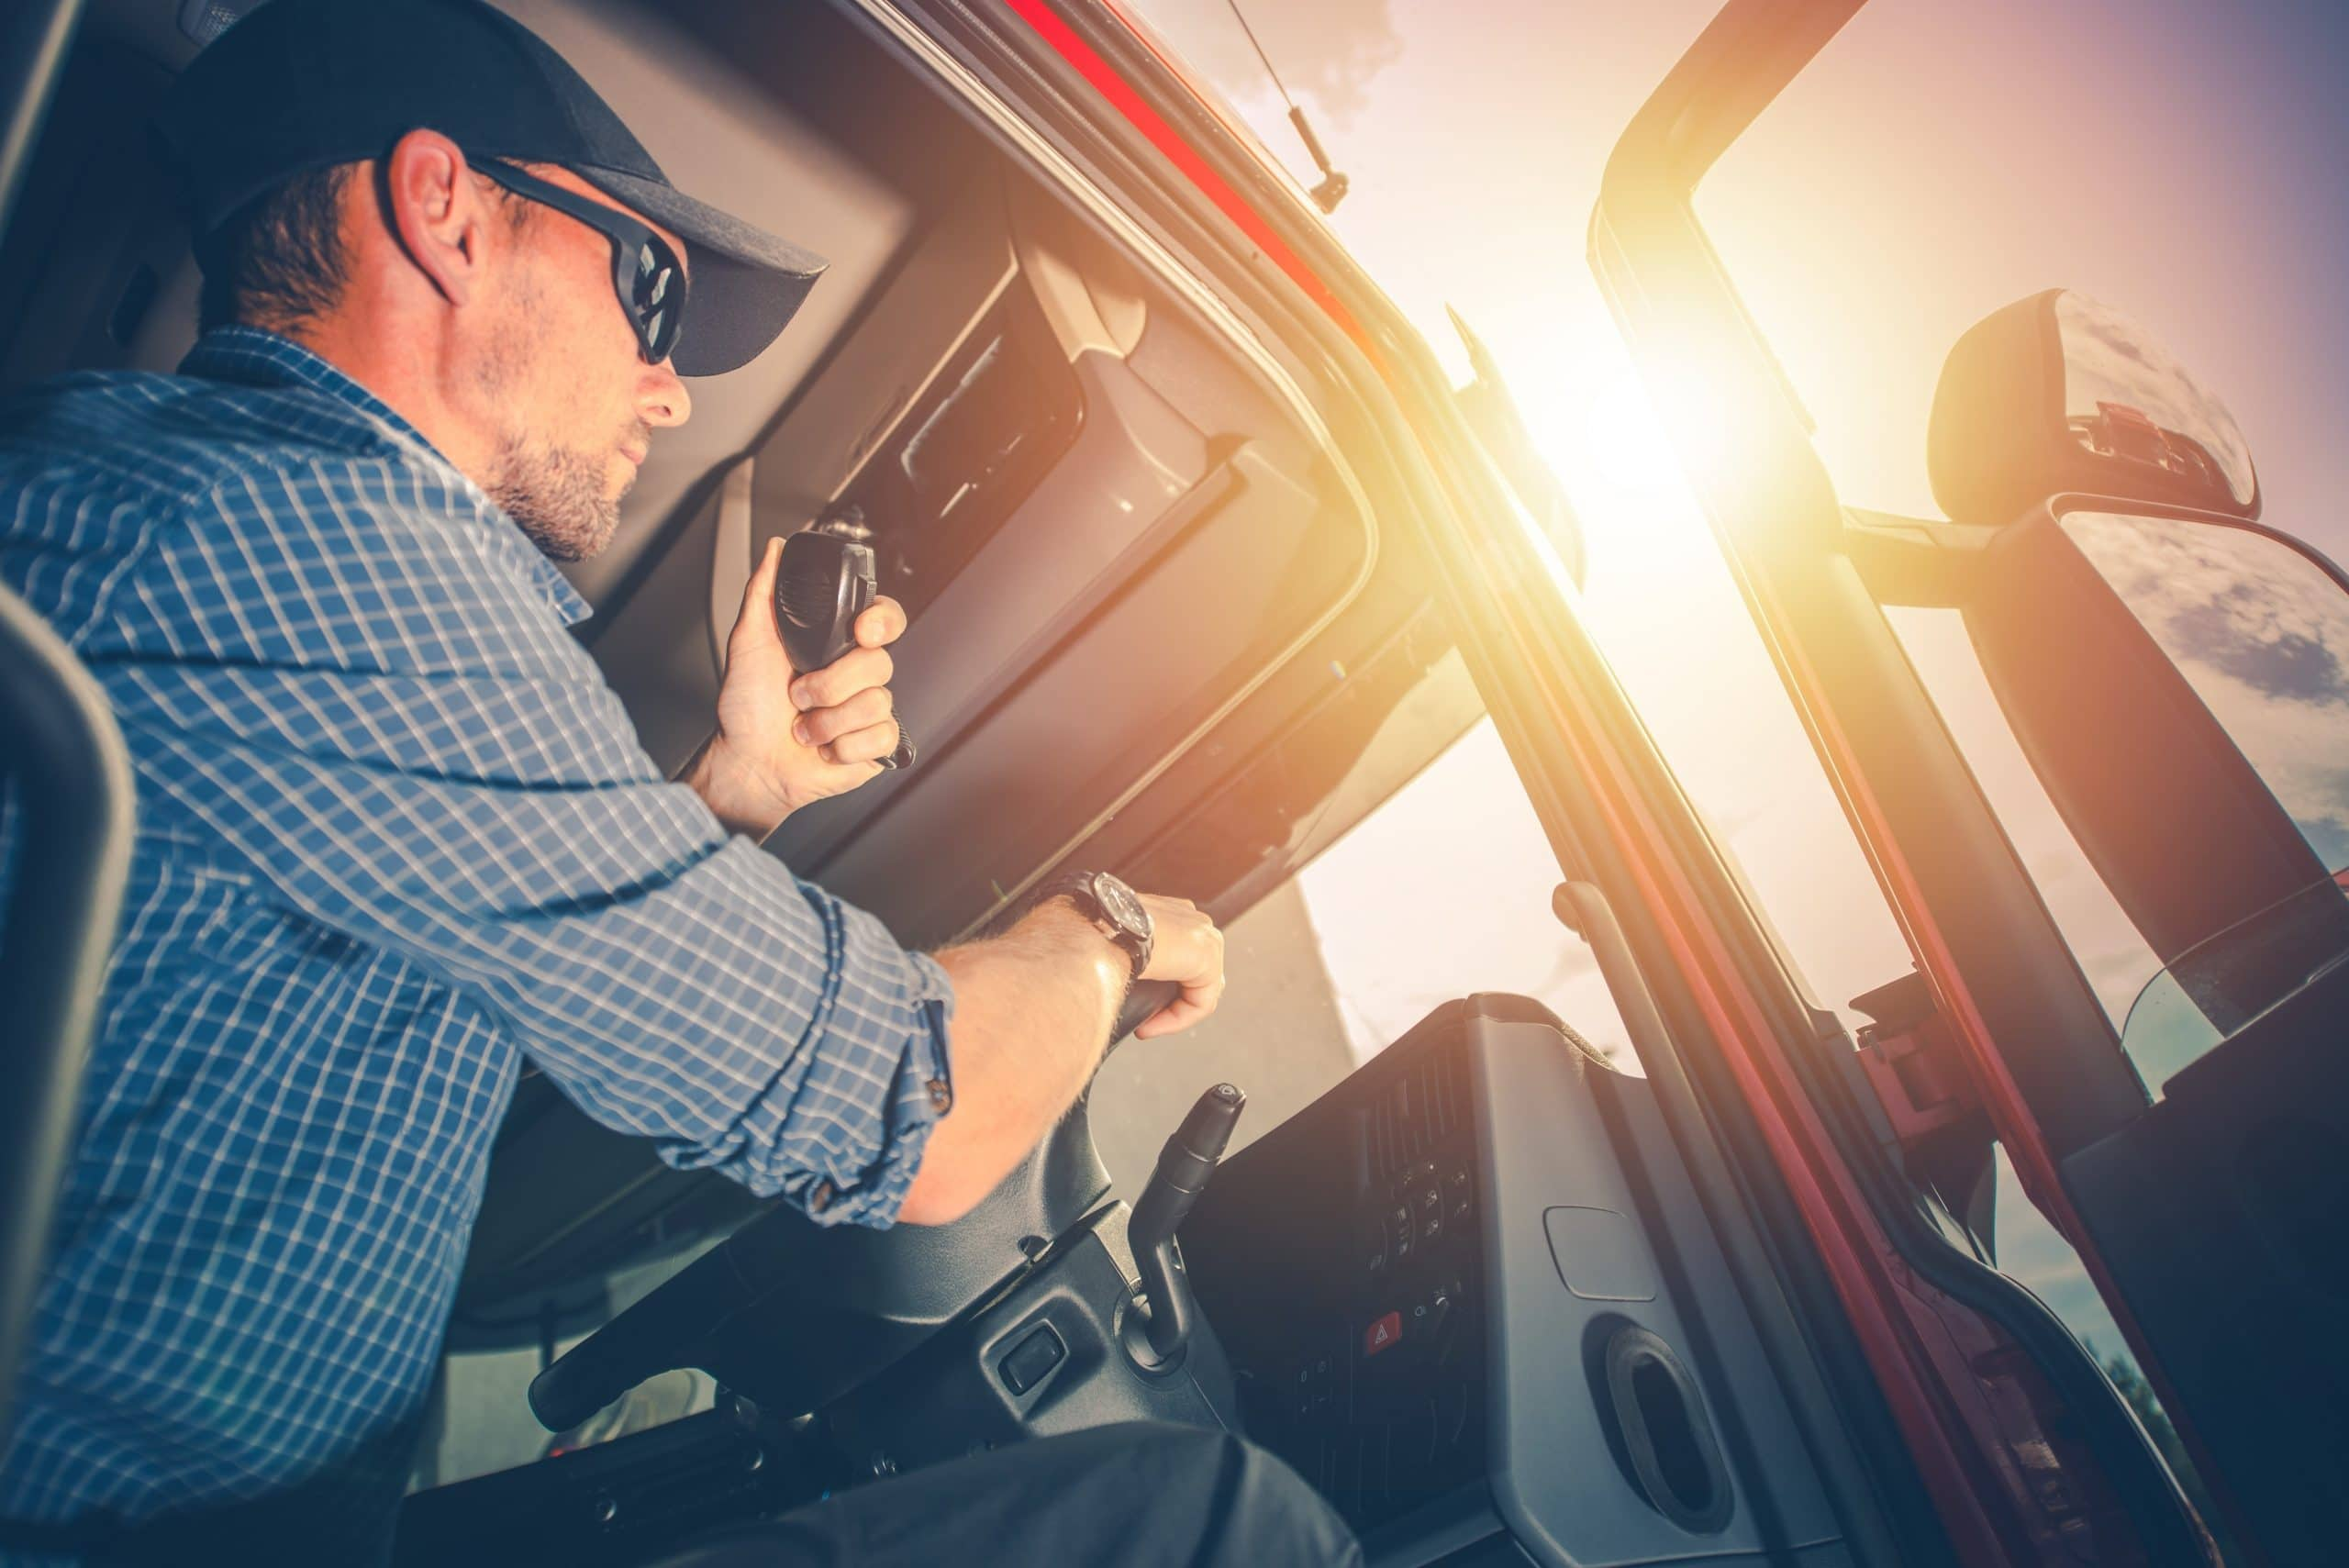 Drivers' Health Targeted as Workplace Risk